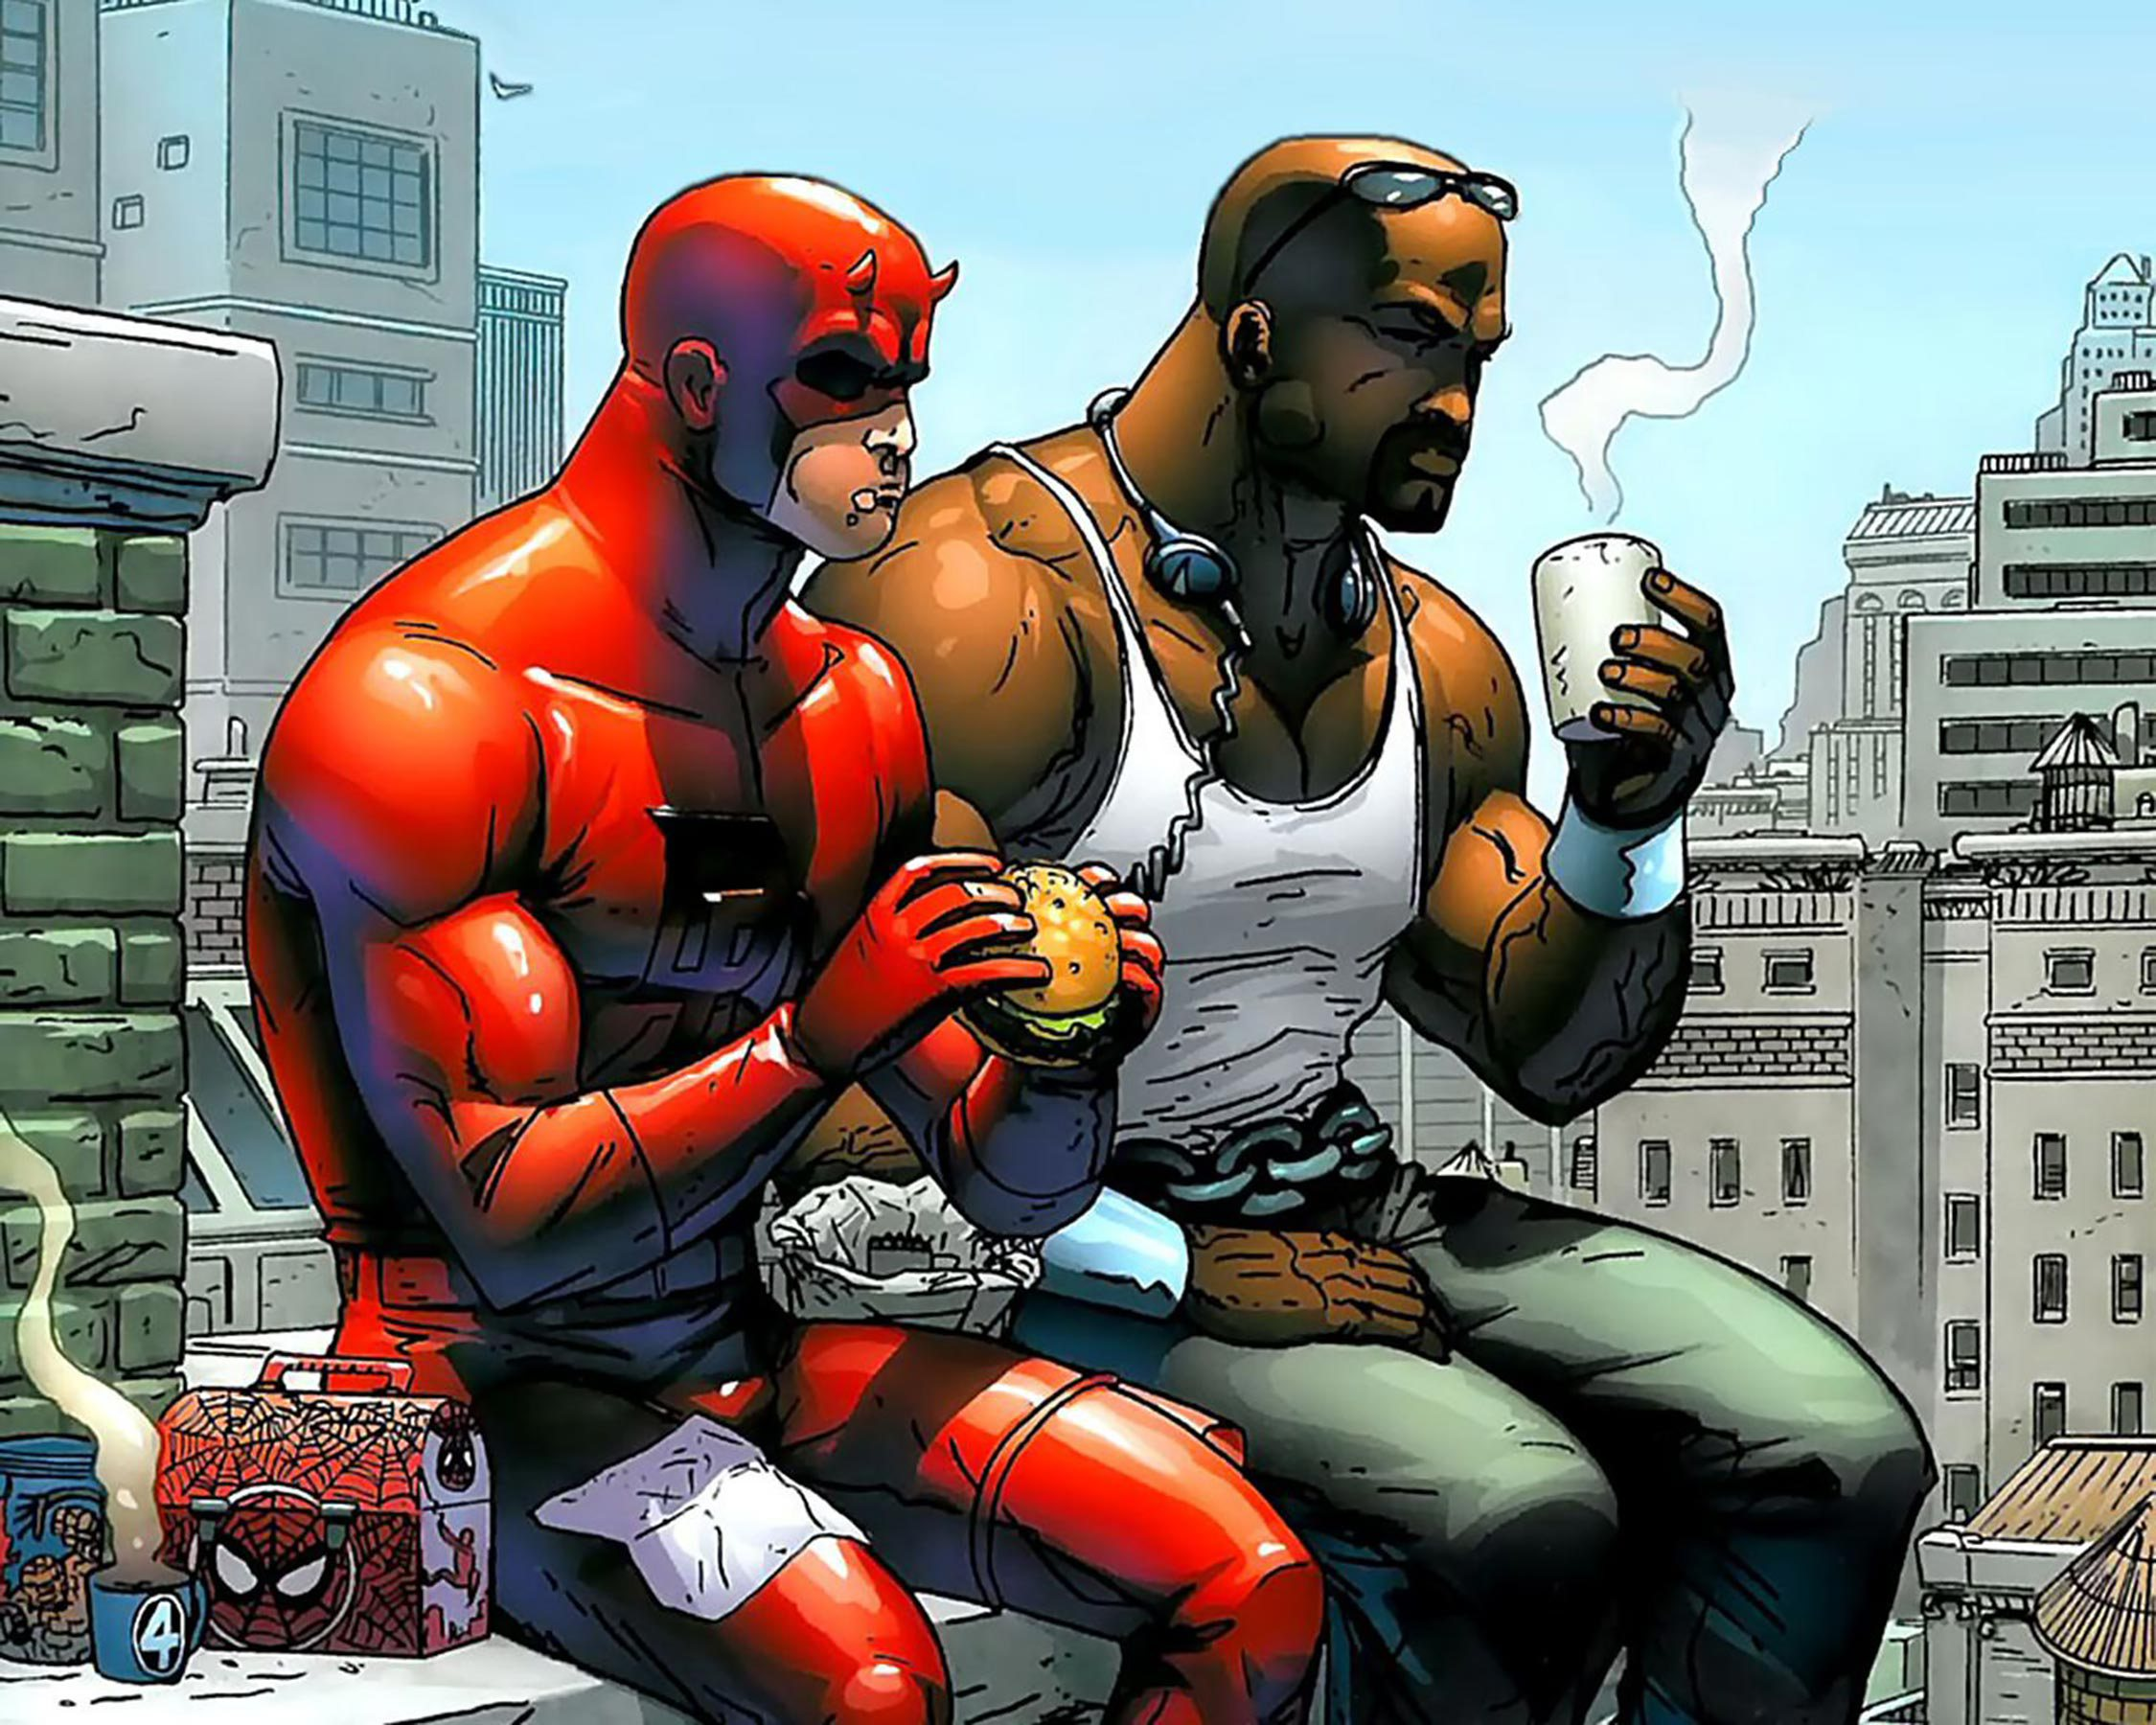 Daredevil and Luke Cage Eating